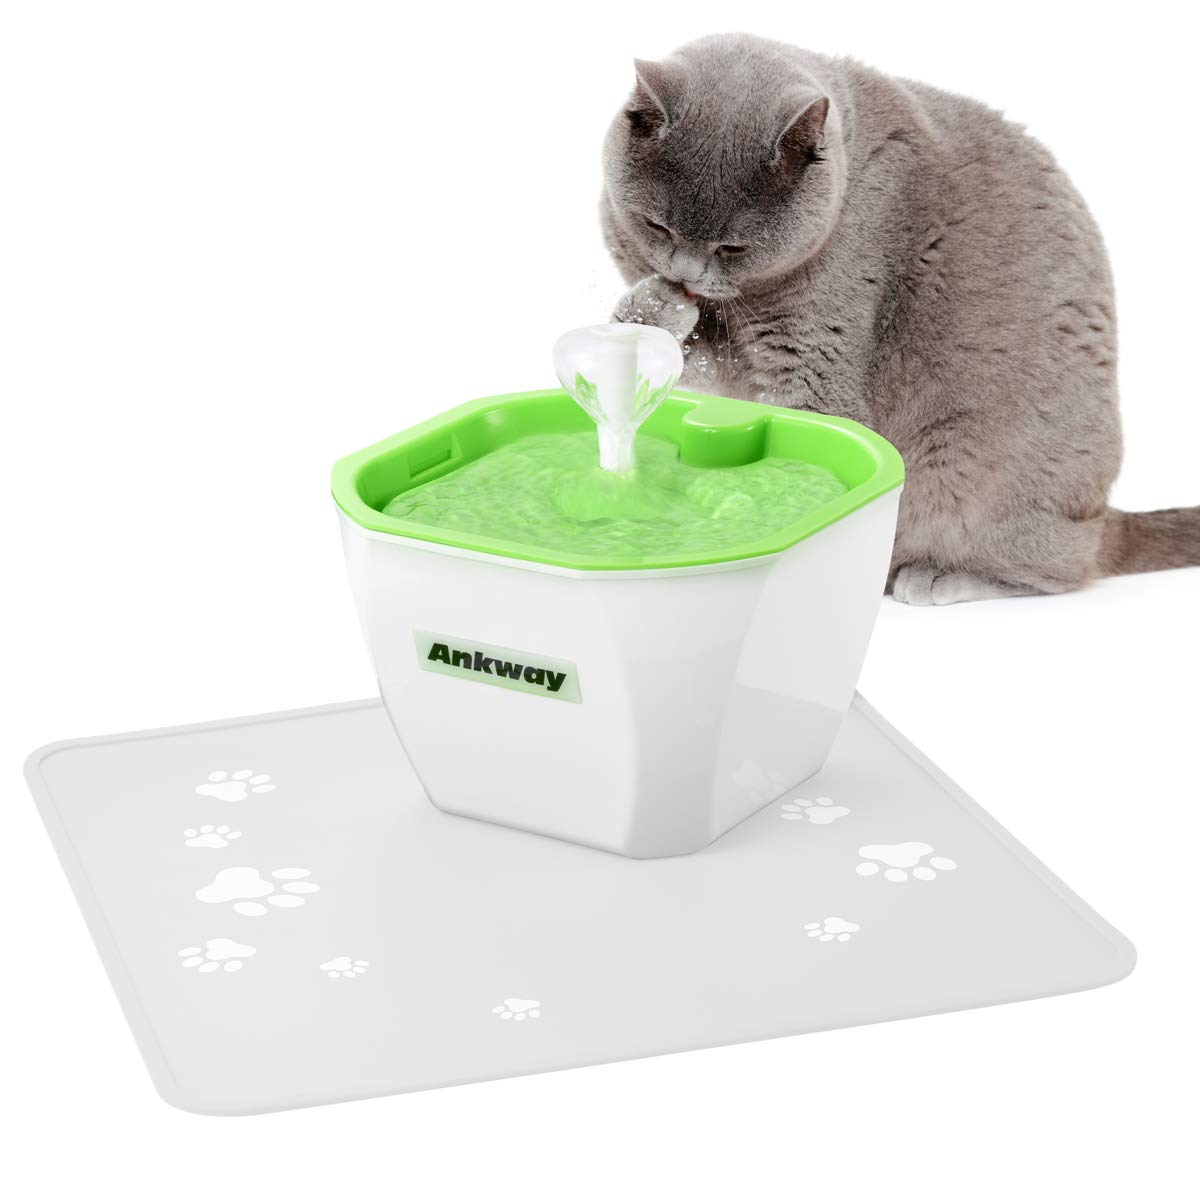 Ankway Pet Water Fountain, Replacement Filter and Silicone Mat